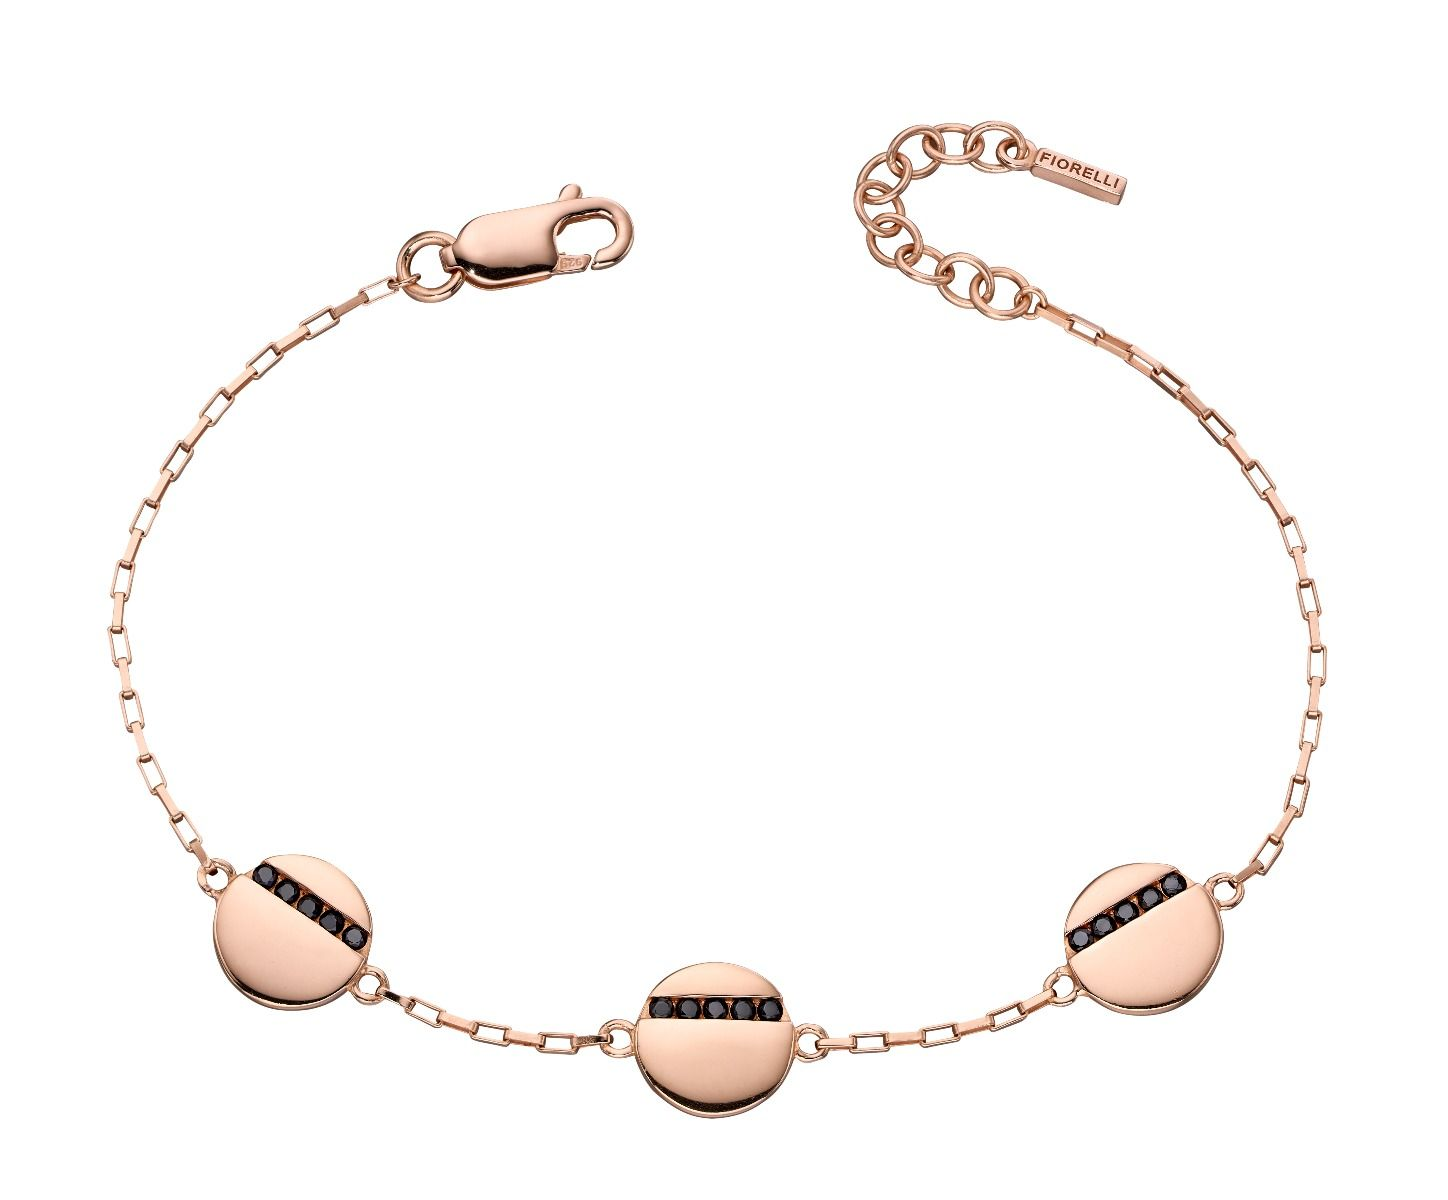 Fiorelli Silver Womens 925 Sterling Silver Black Cubic Zirconia Rose Gold Plated Round Disc Station Bracelet of Length 17cm - 19cm